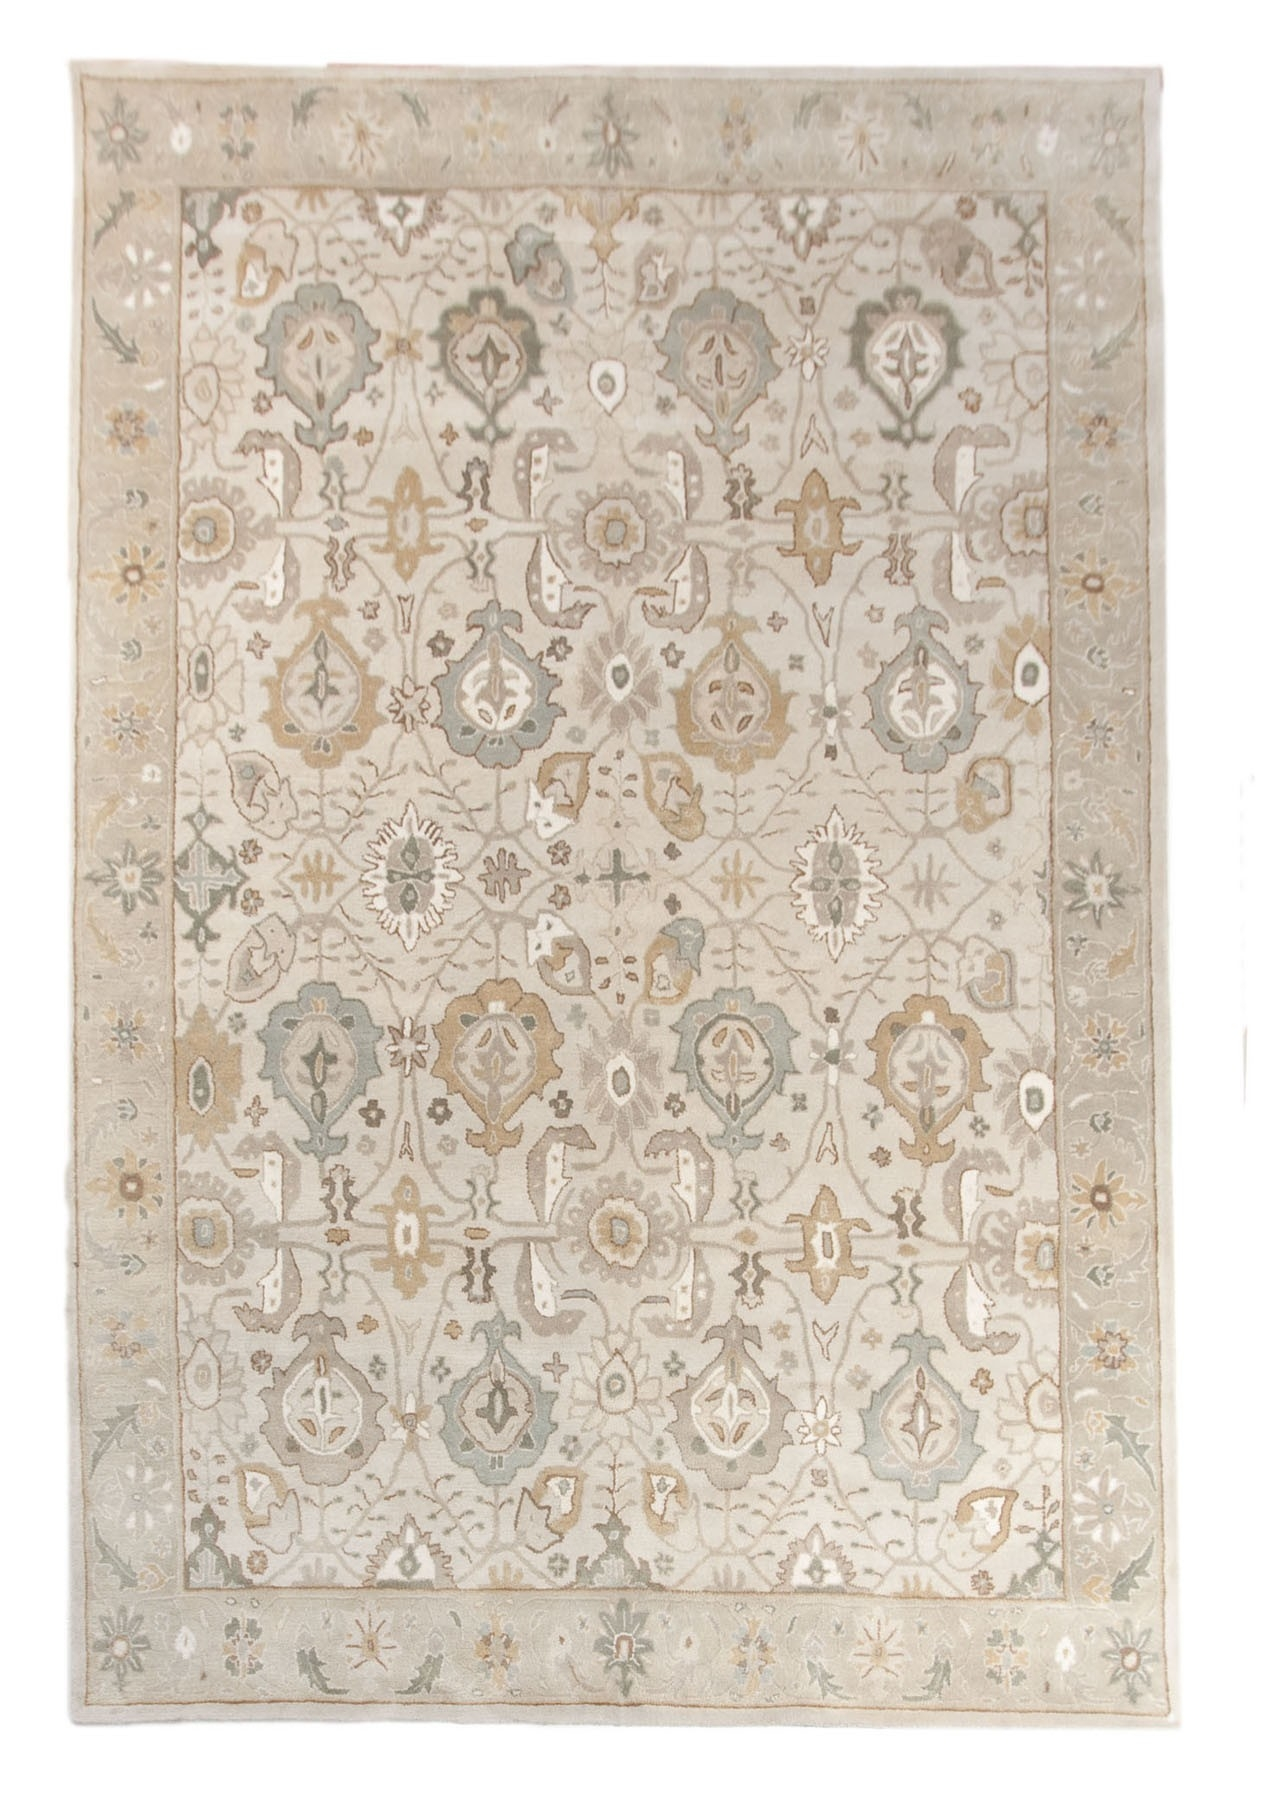 Area Rugs 912 Wool Roselawnlutheran In 9×12 Wool Area Rugs (View 2 of 15)